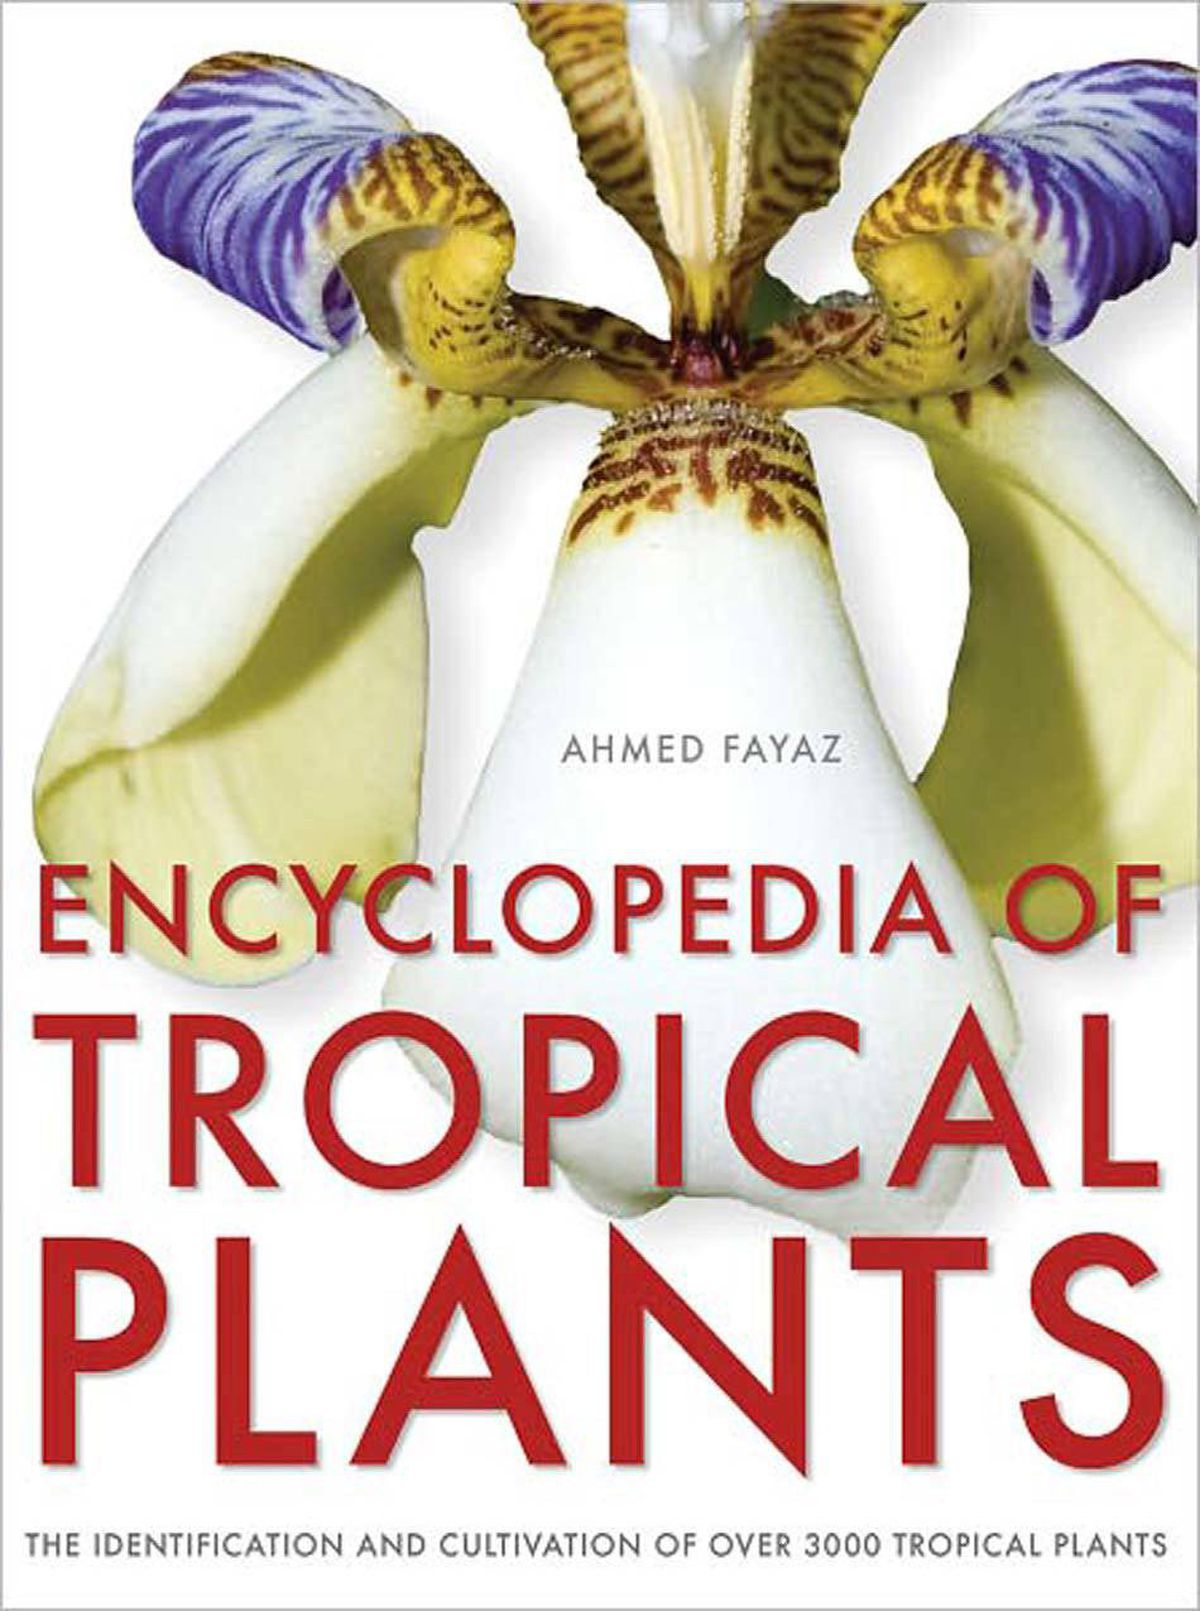 ENCYCLOPEDIA OF TROPICAL PLANTS Identification and Cultivation of Over 3,000 Tropical Plants By Ahmed Fayaz (Firefly, 720 pages, $75) This book, with its lovely illustrations, is for winter nights when you dream of having a conservatory, or for any time of the year when you are trying to coax tropical plants in your garden. The introduction explains presentation in alphabetic order of genera, species arranged in family order to make it easier to compare plants. And it has helpful separate indices of common and botanical names as well as a glossary.